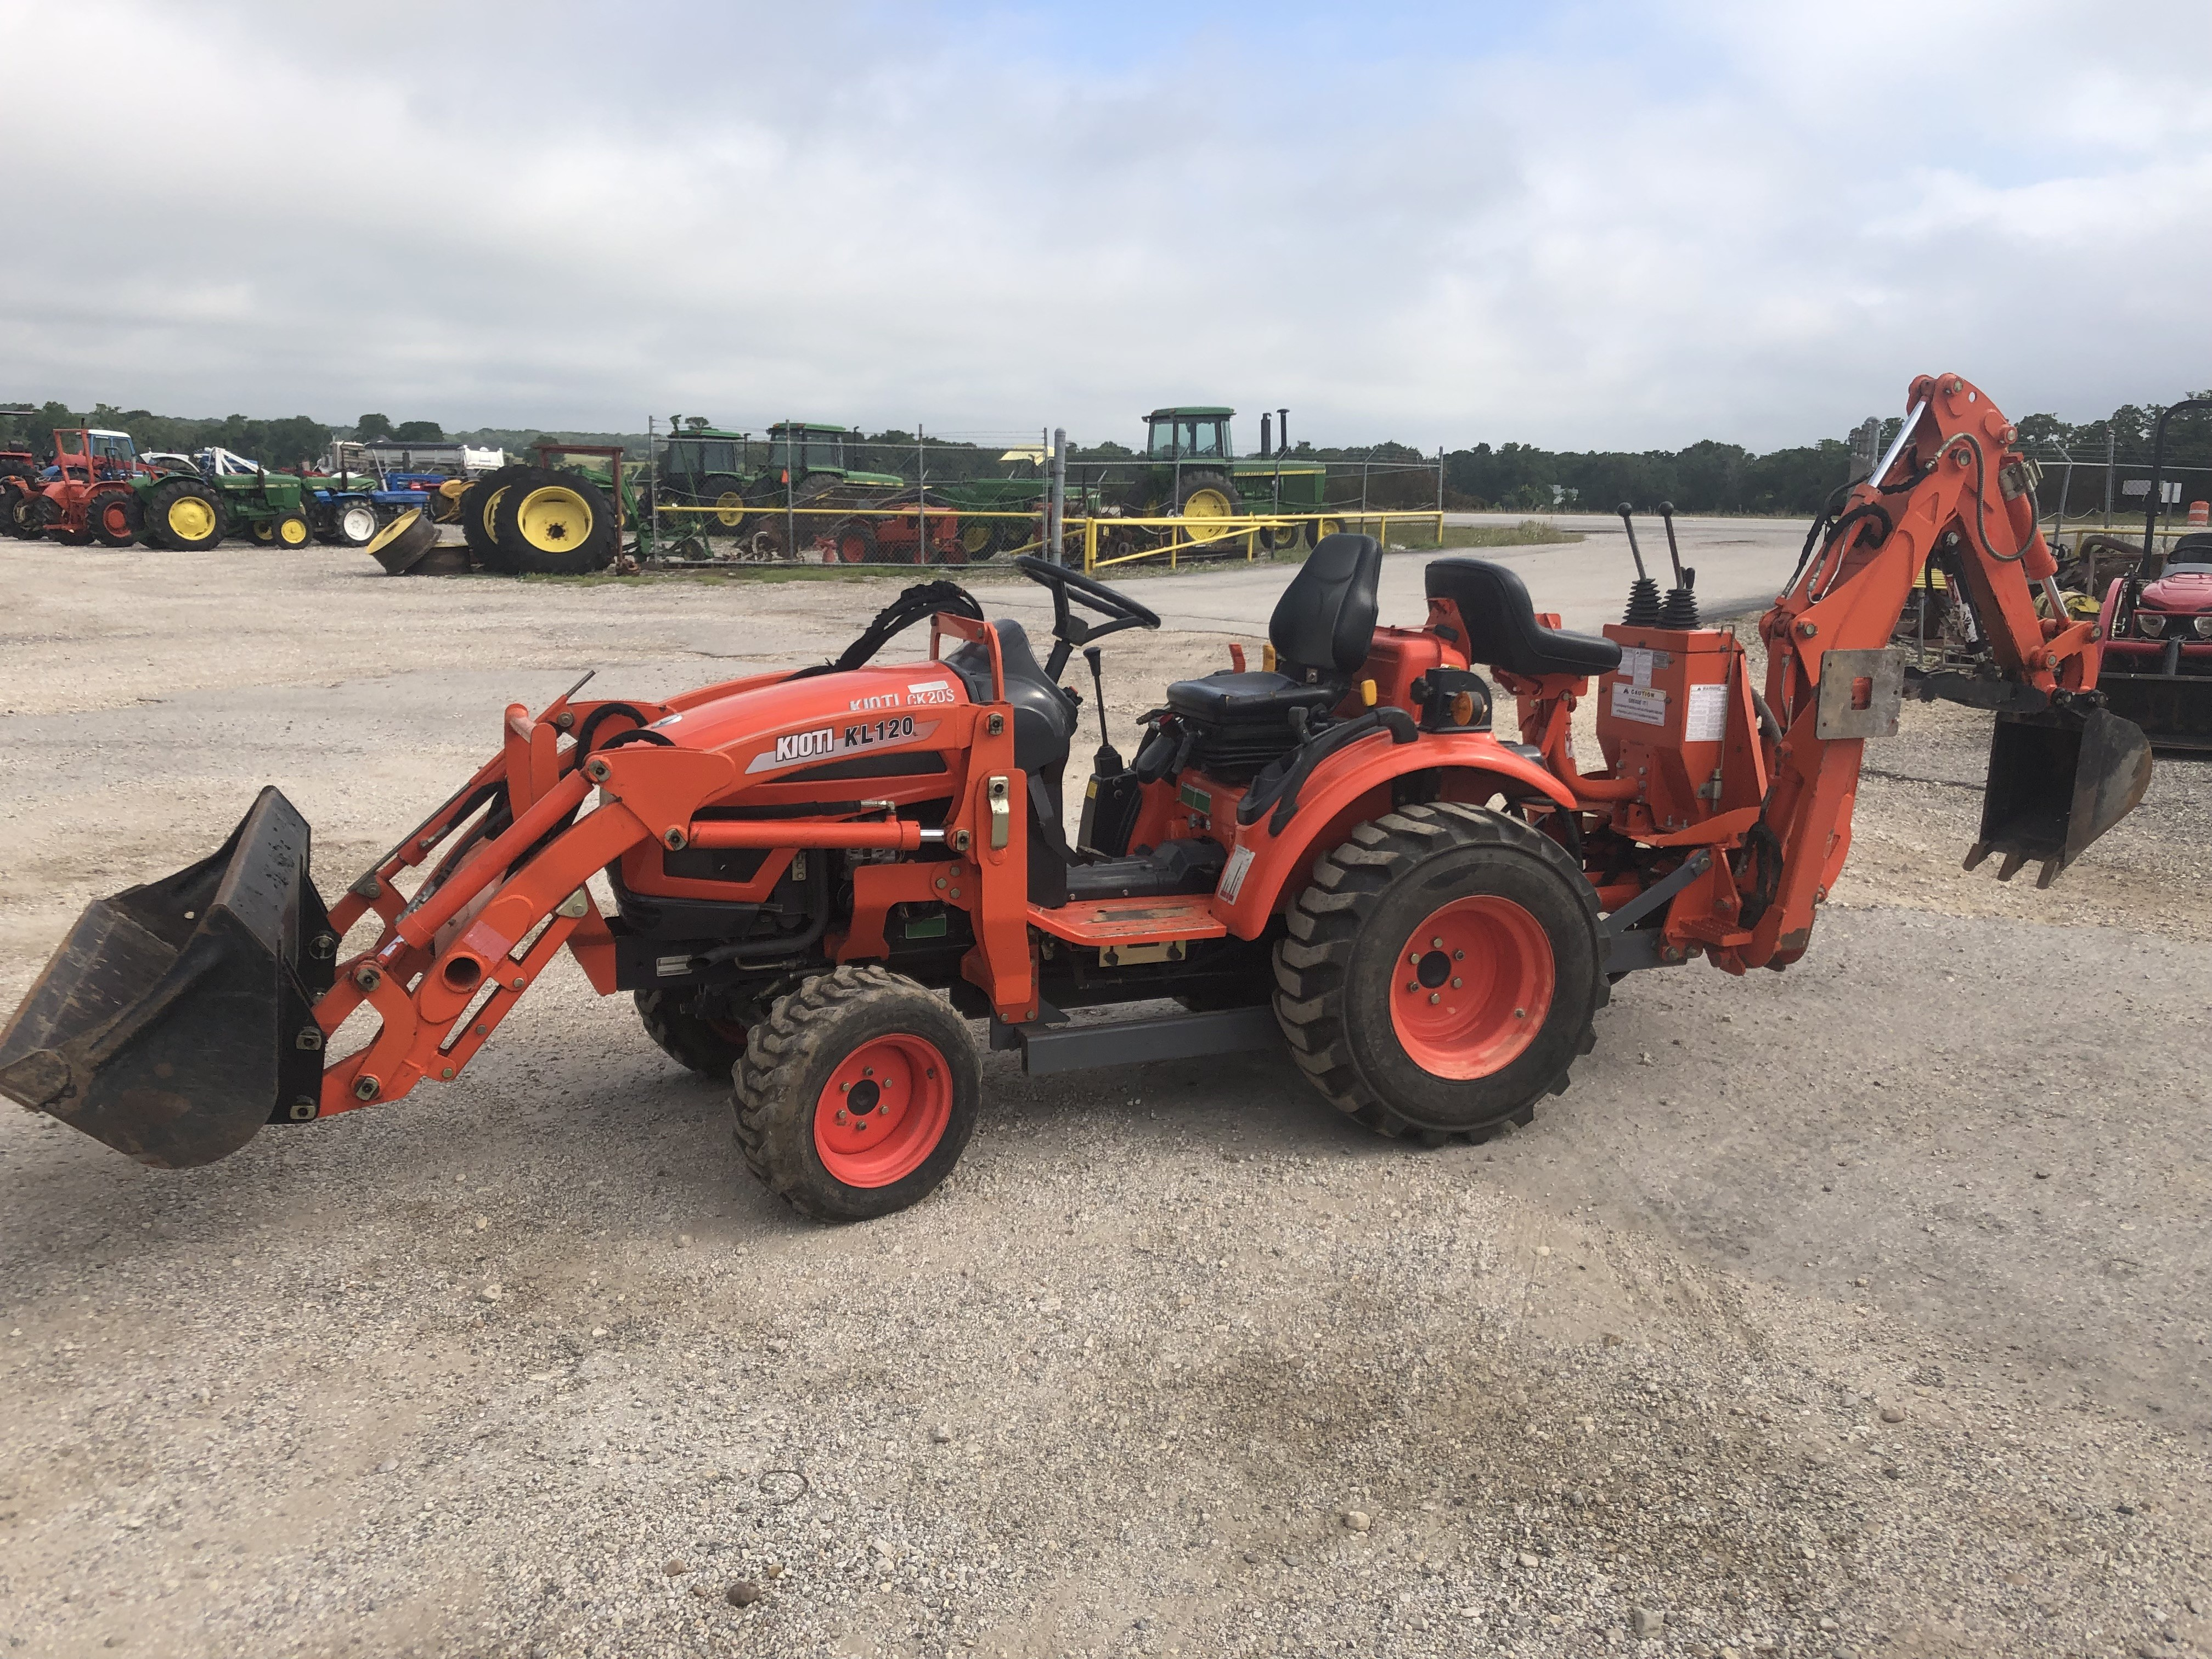 Used Tractors For Sale >> Used Agricultural Equipment In Texas Used Tractors For